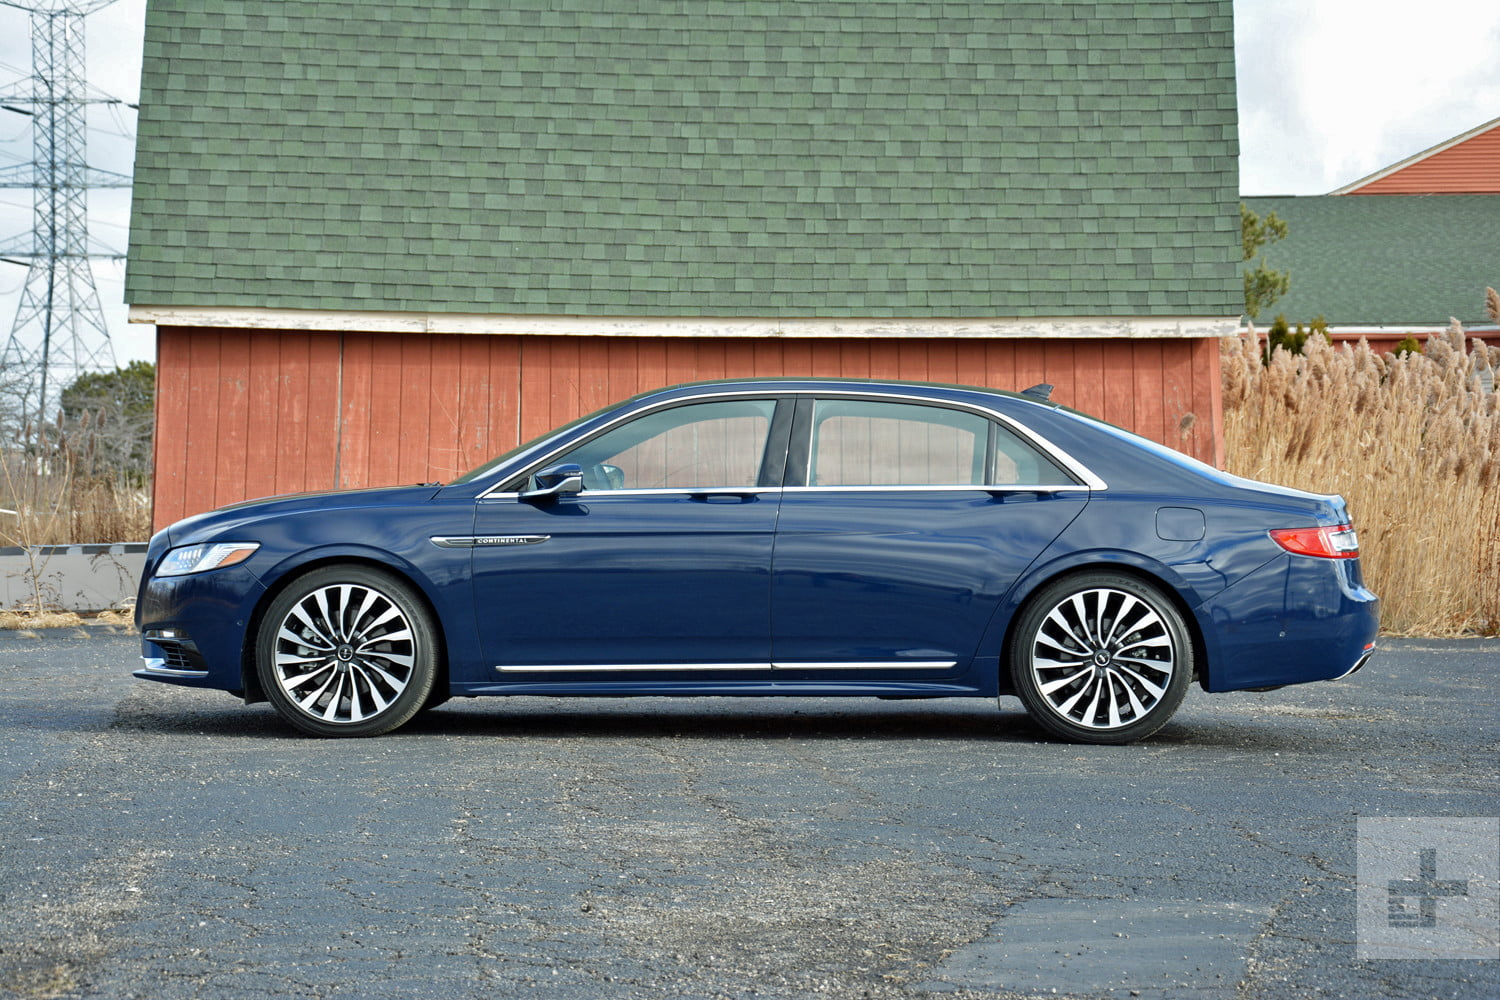 80 Gallery of 2019 The Lincoln Continental Pictures with 2019 The Lincoln Continental